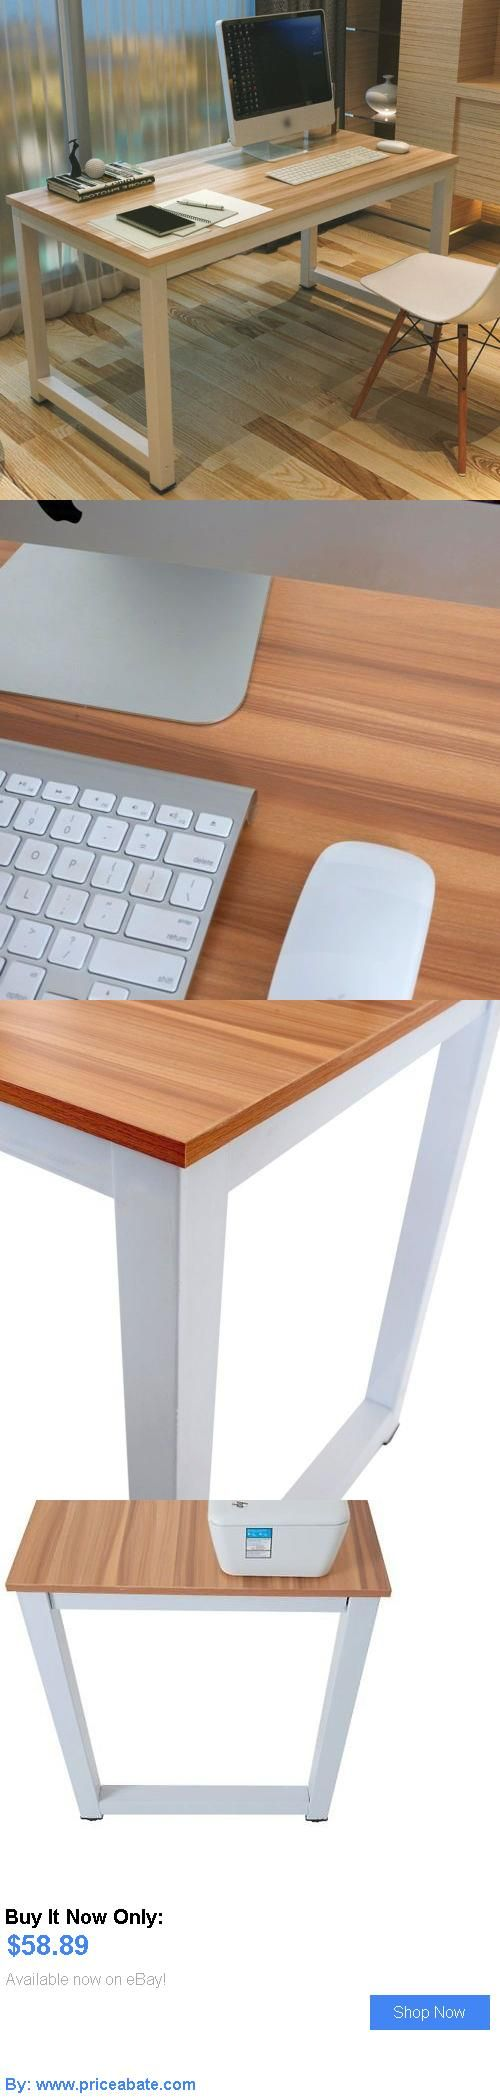 Office Furniture: Computer Desk Pc Laptop Table Wood Workstation Study Home Office Furniture Brown BUY IT NOW ONLY: $58.89 #priceabateOfficeFurniture OR #priceabate